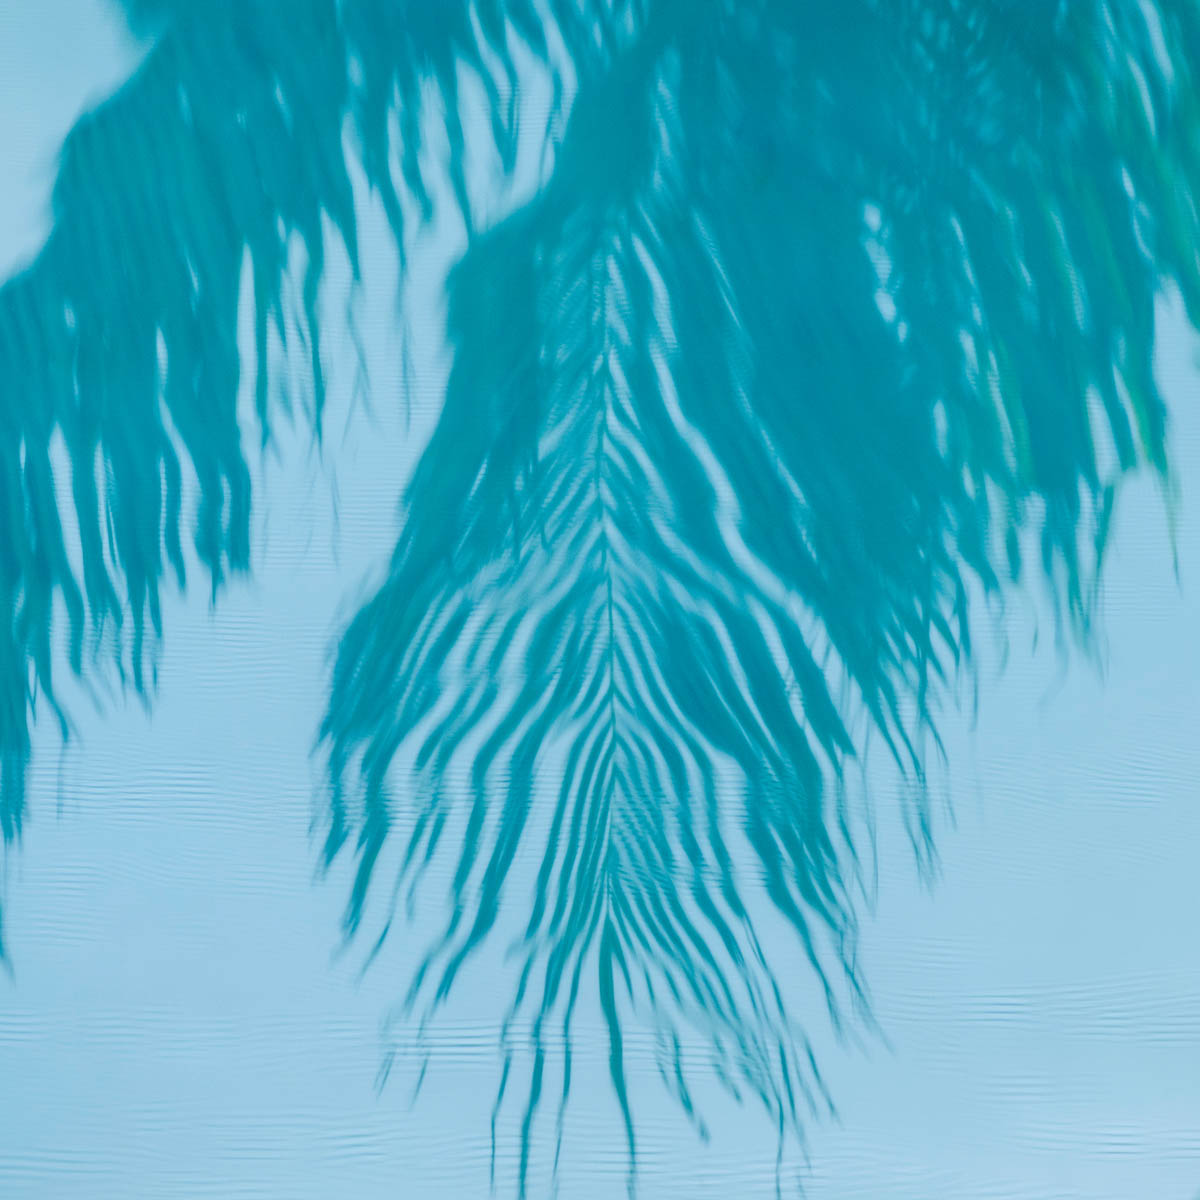 Free stock photo Reflection of palm leaves in water